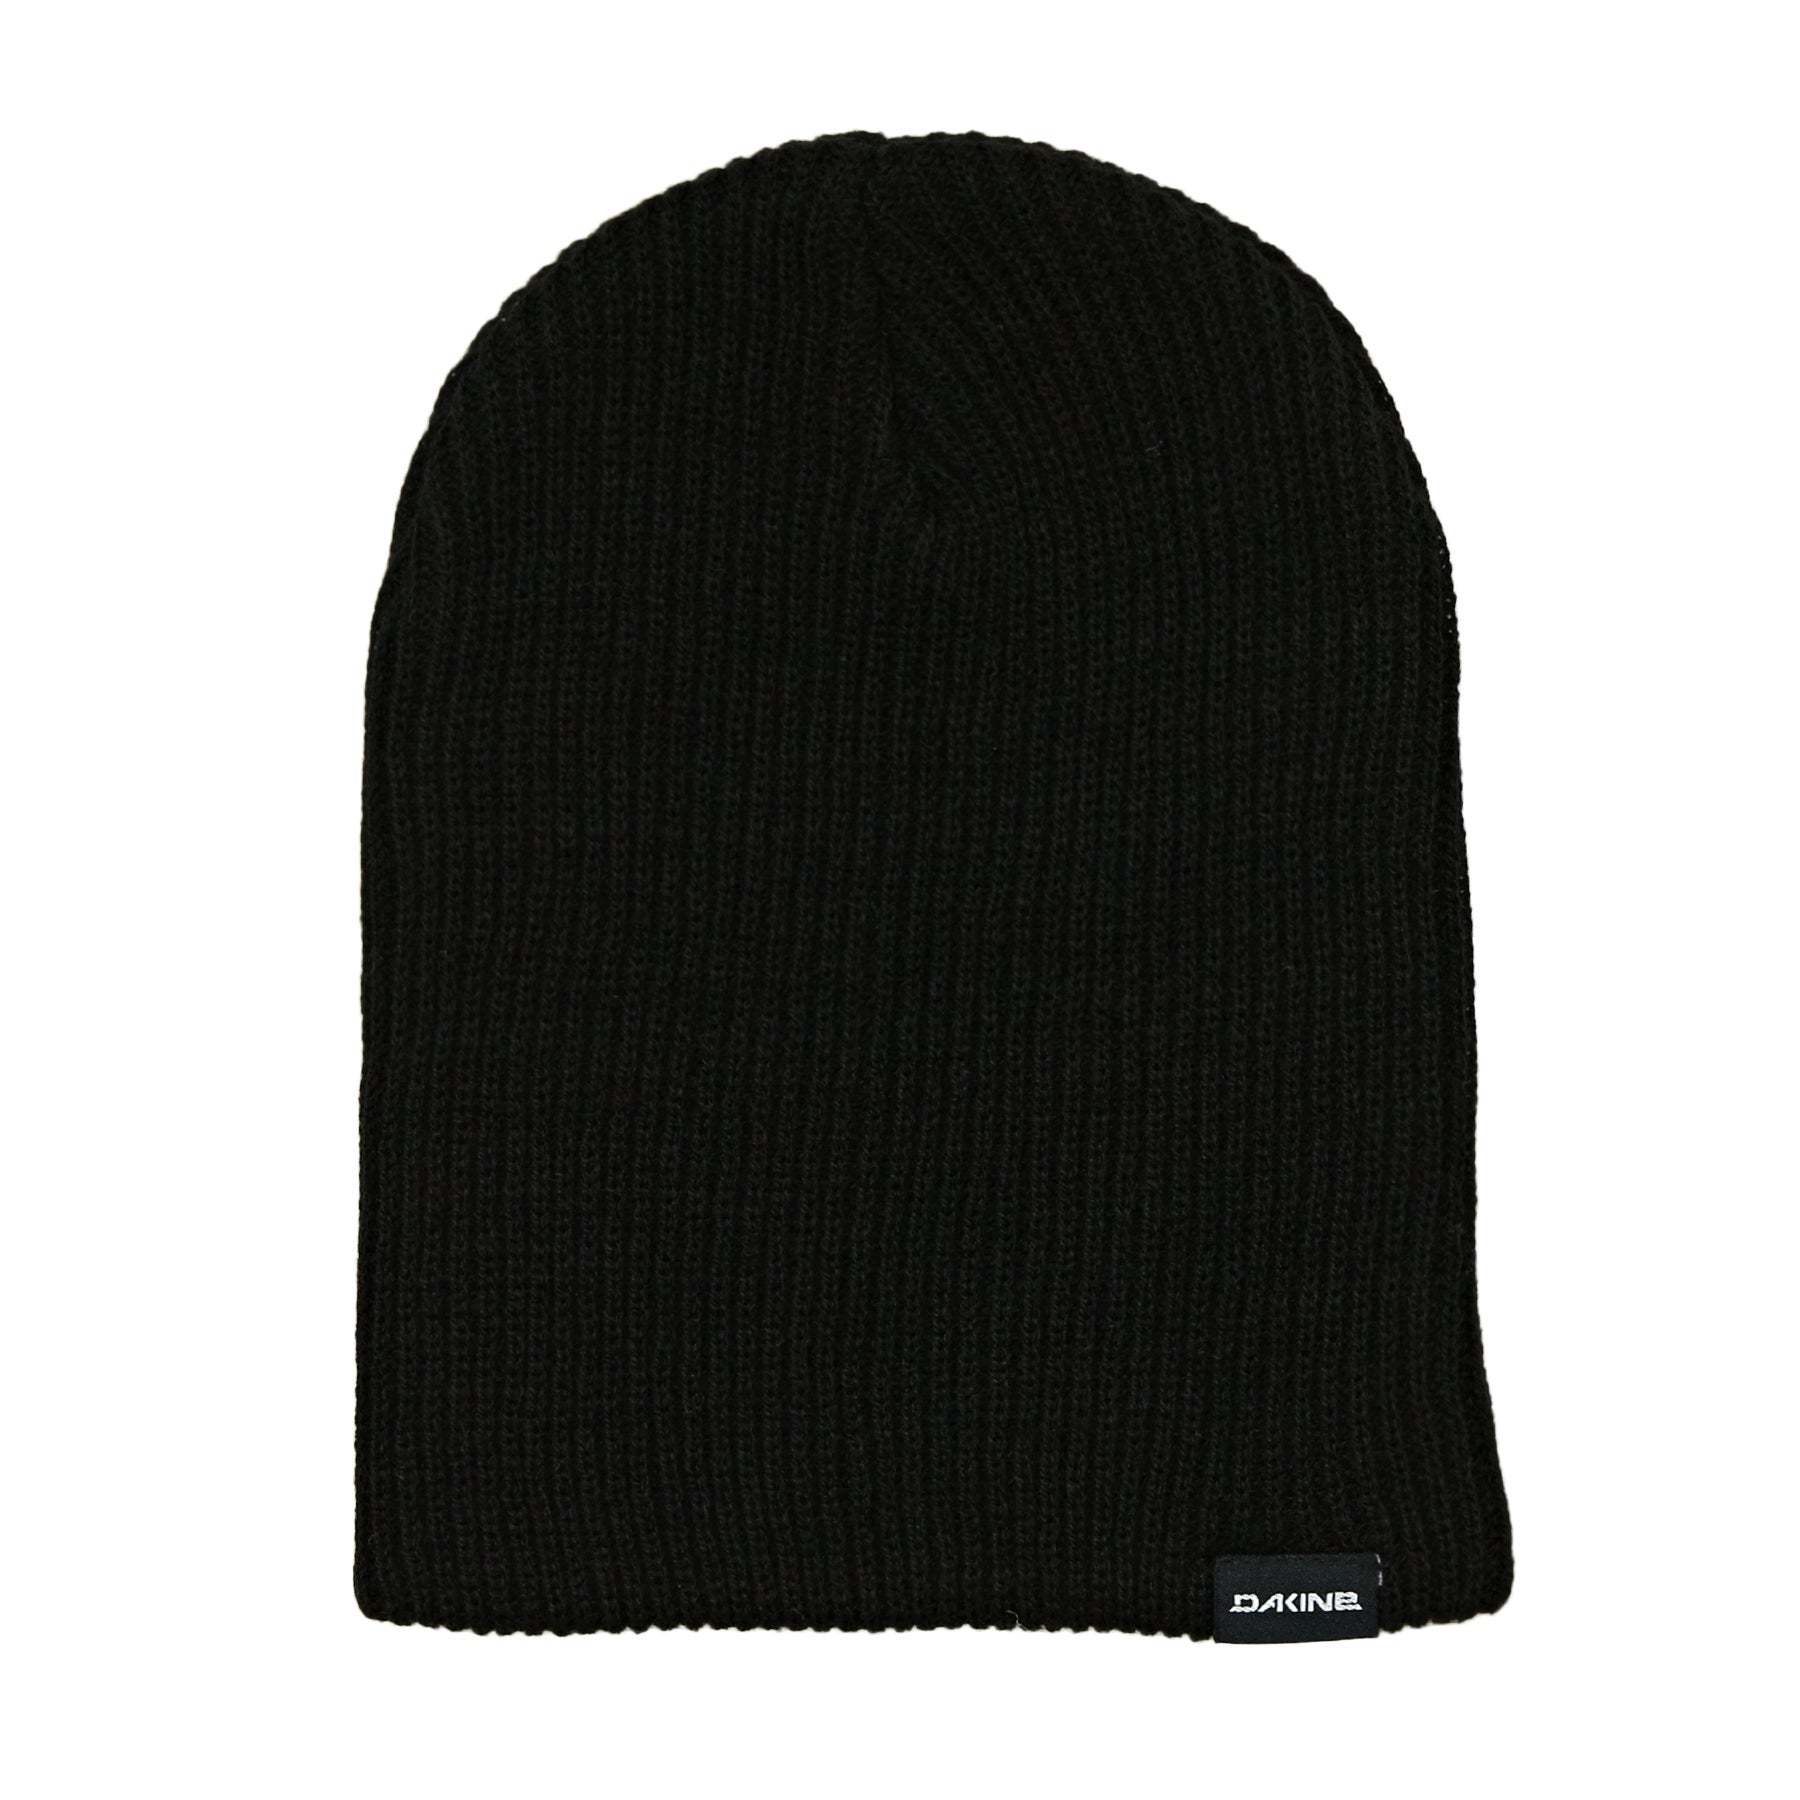 Dakine Tall Boy Mens Beanie